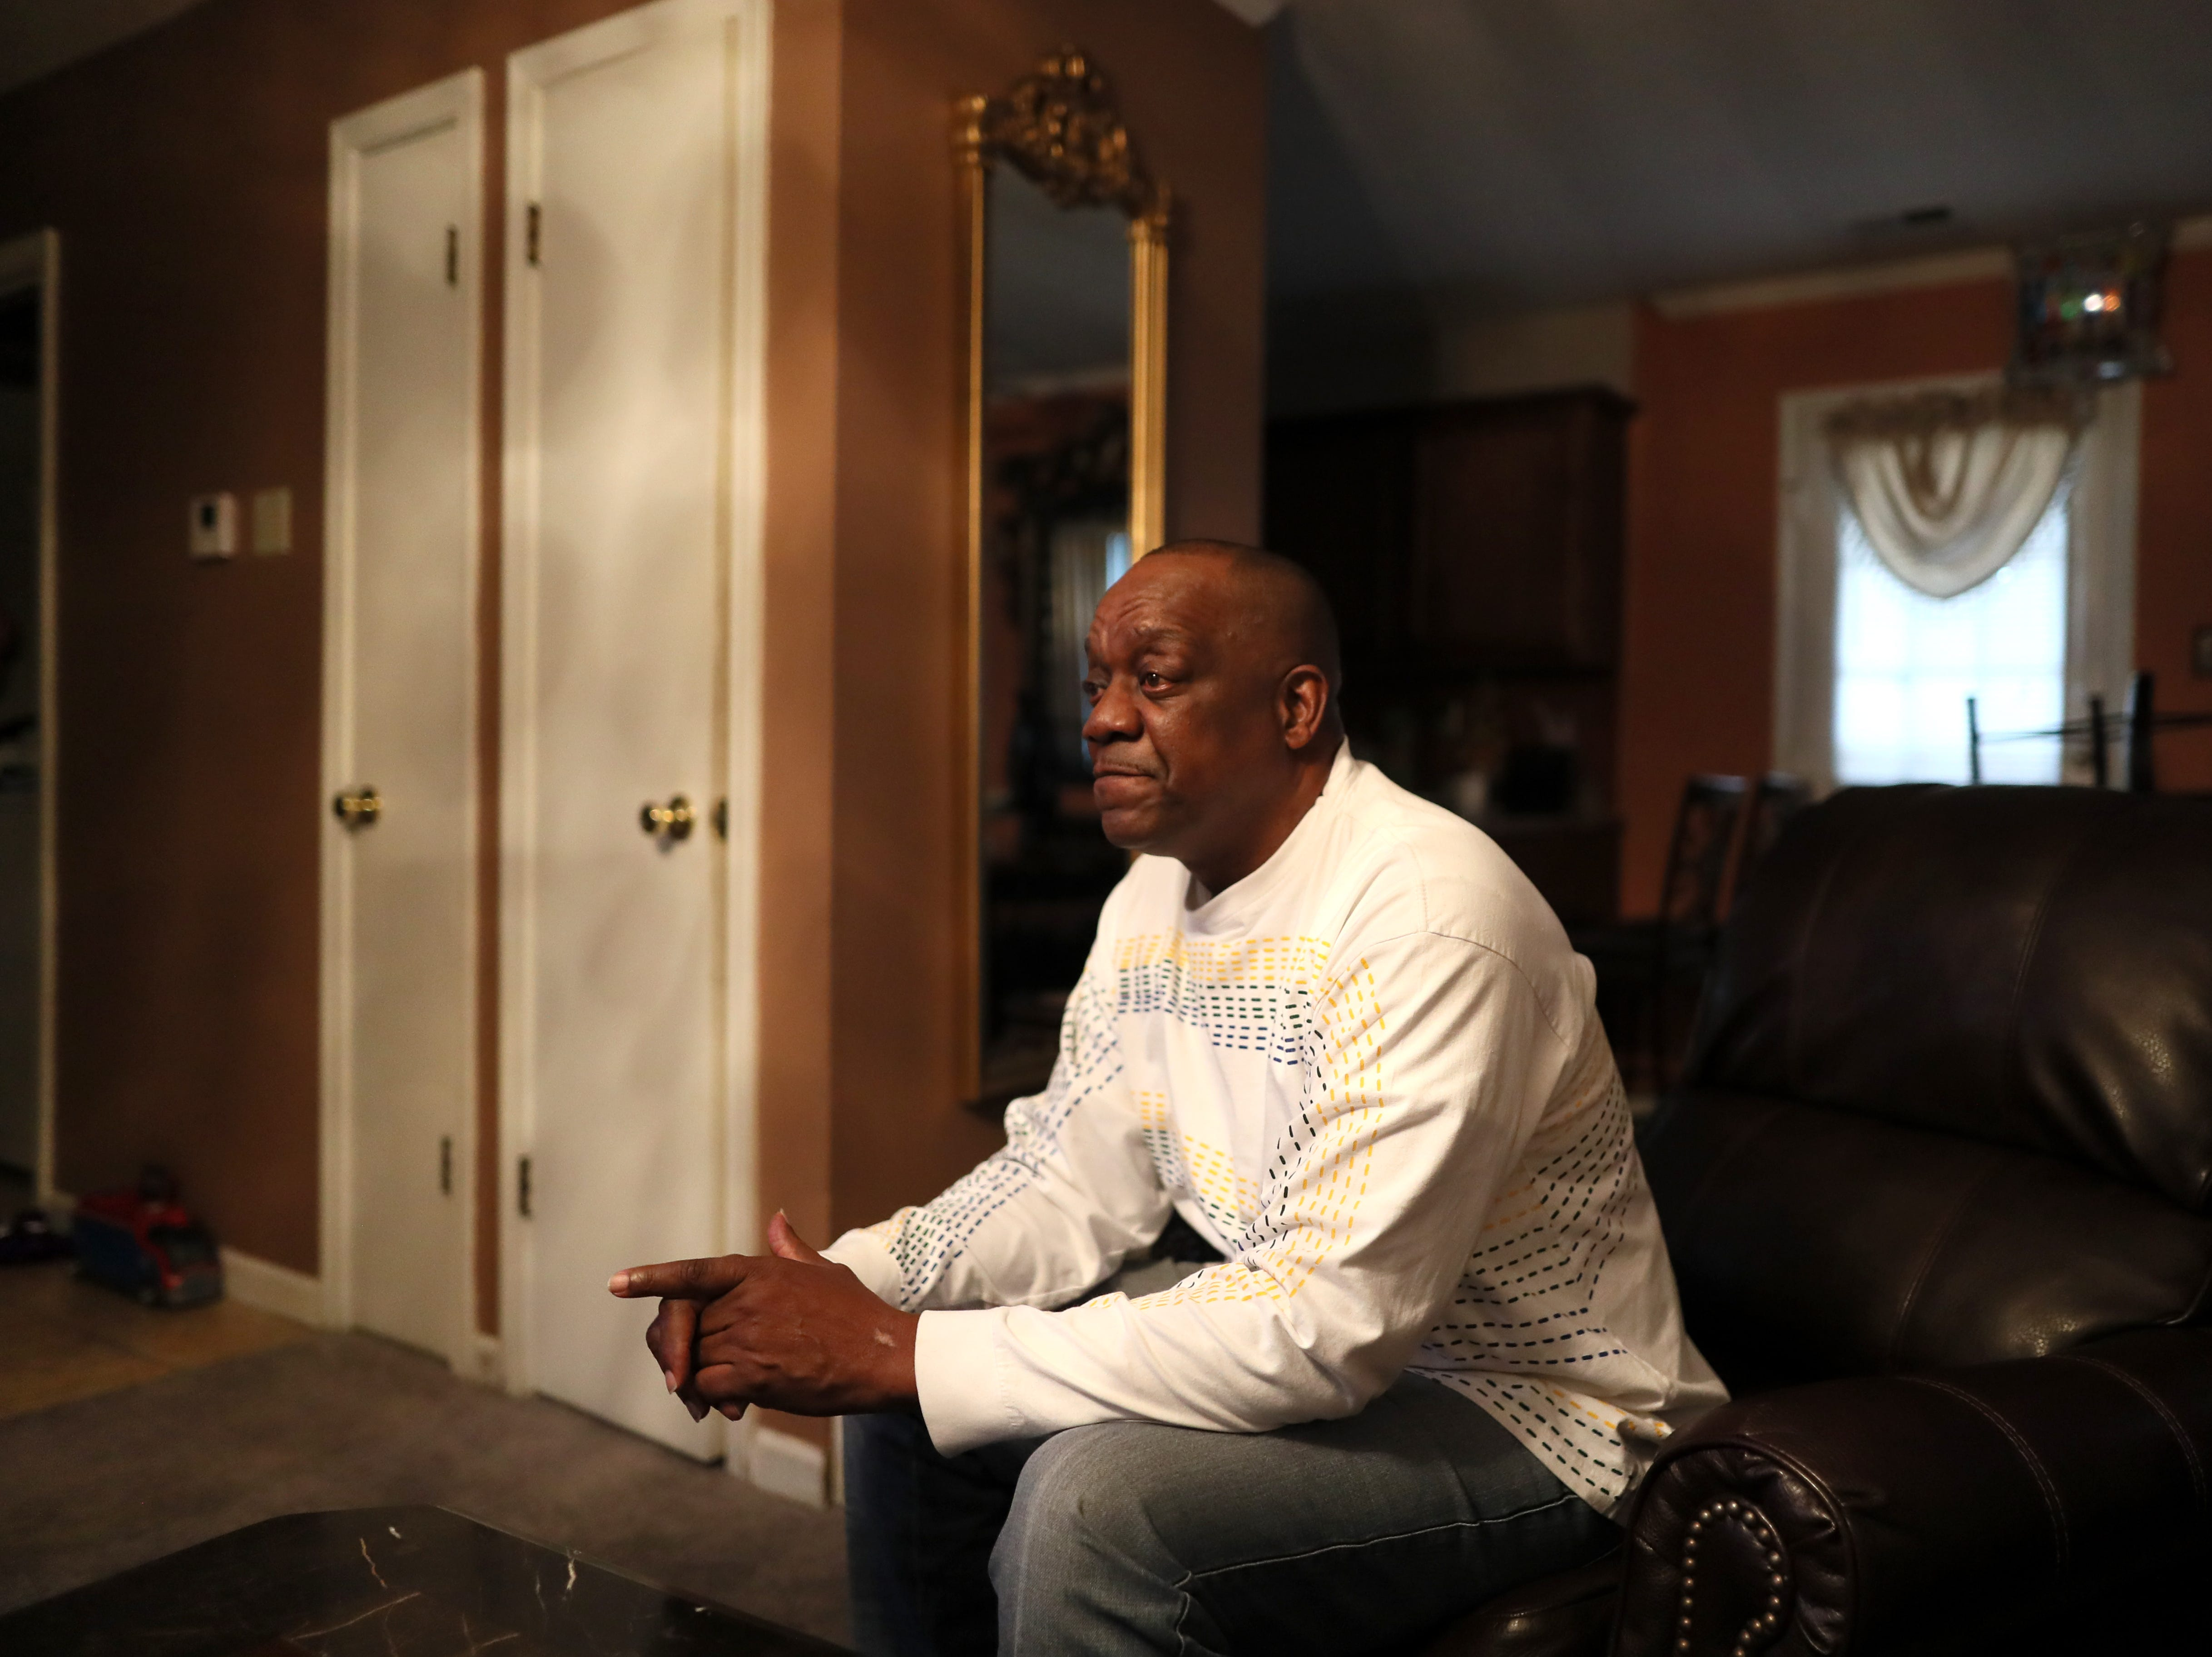 Reginald Johnson talks about his son, Samuel who was murdered at age 21 outside of his home on Halloween 2014, and his son's room which has remained unchanged in his house since that day during a conversation about gang violence in Memphis on Thursday, Jan. 31, 2019.